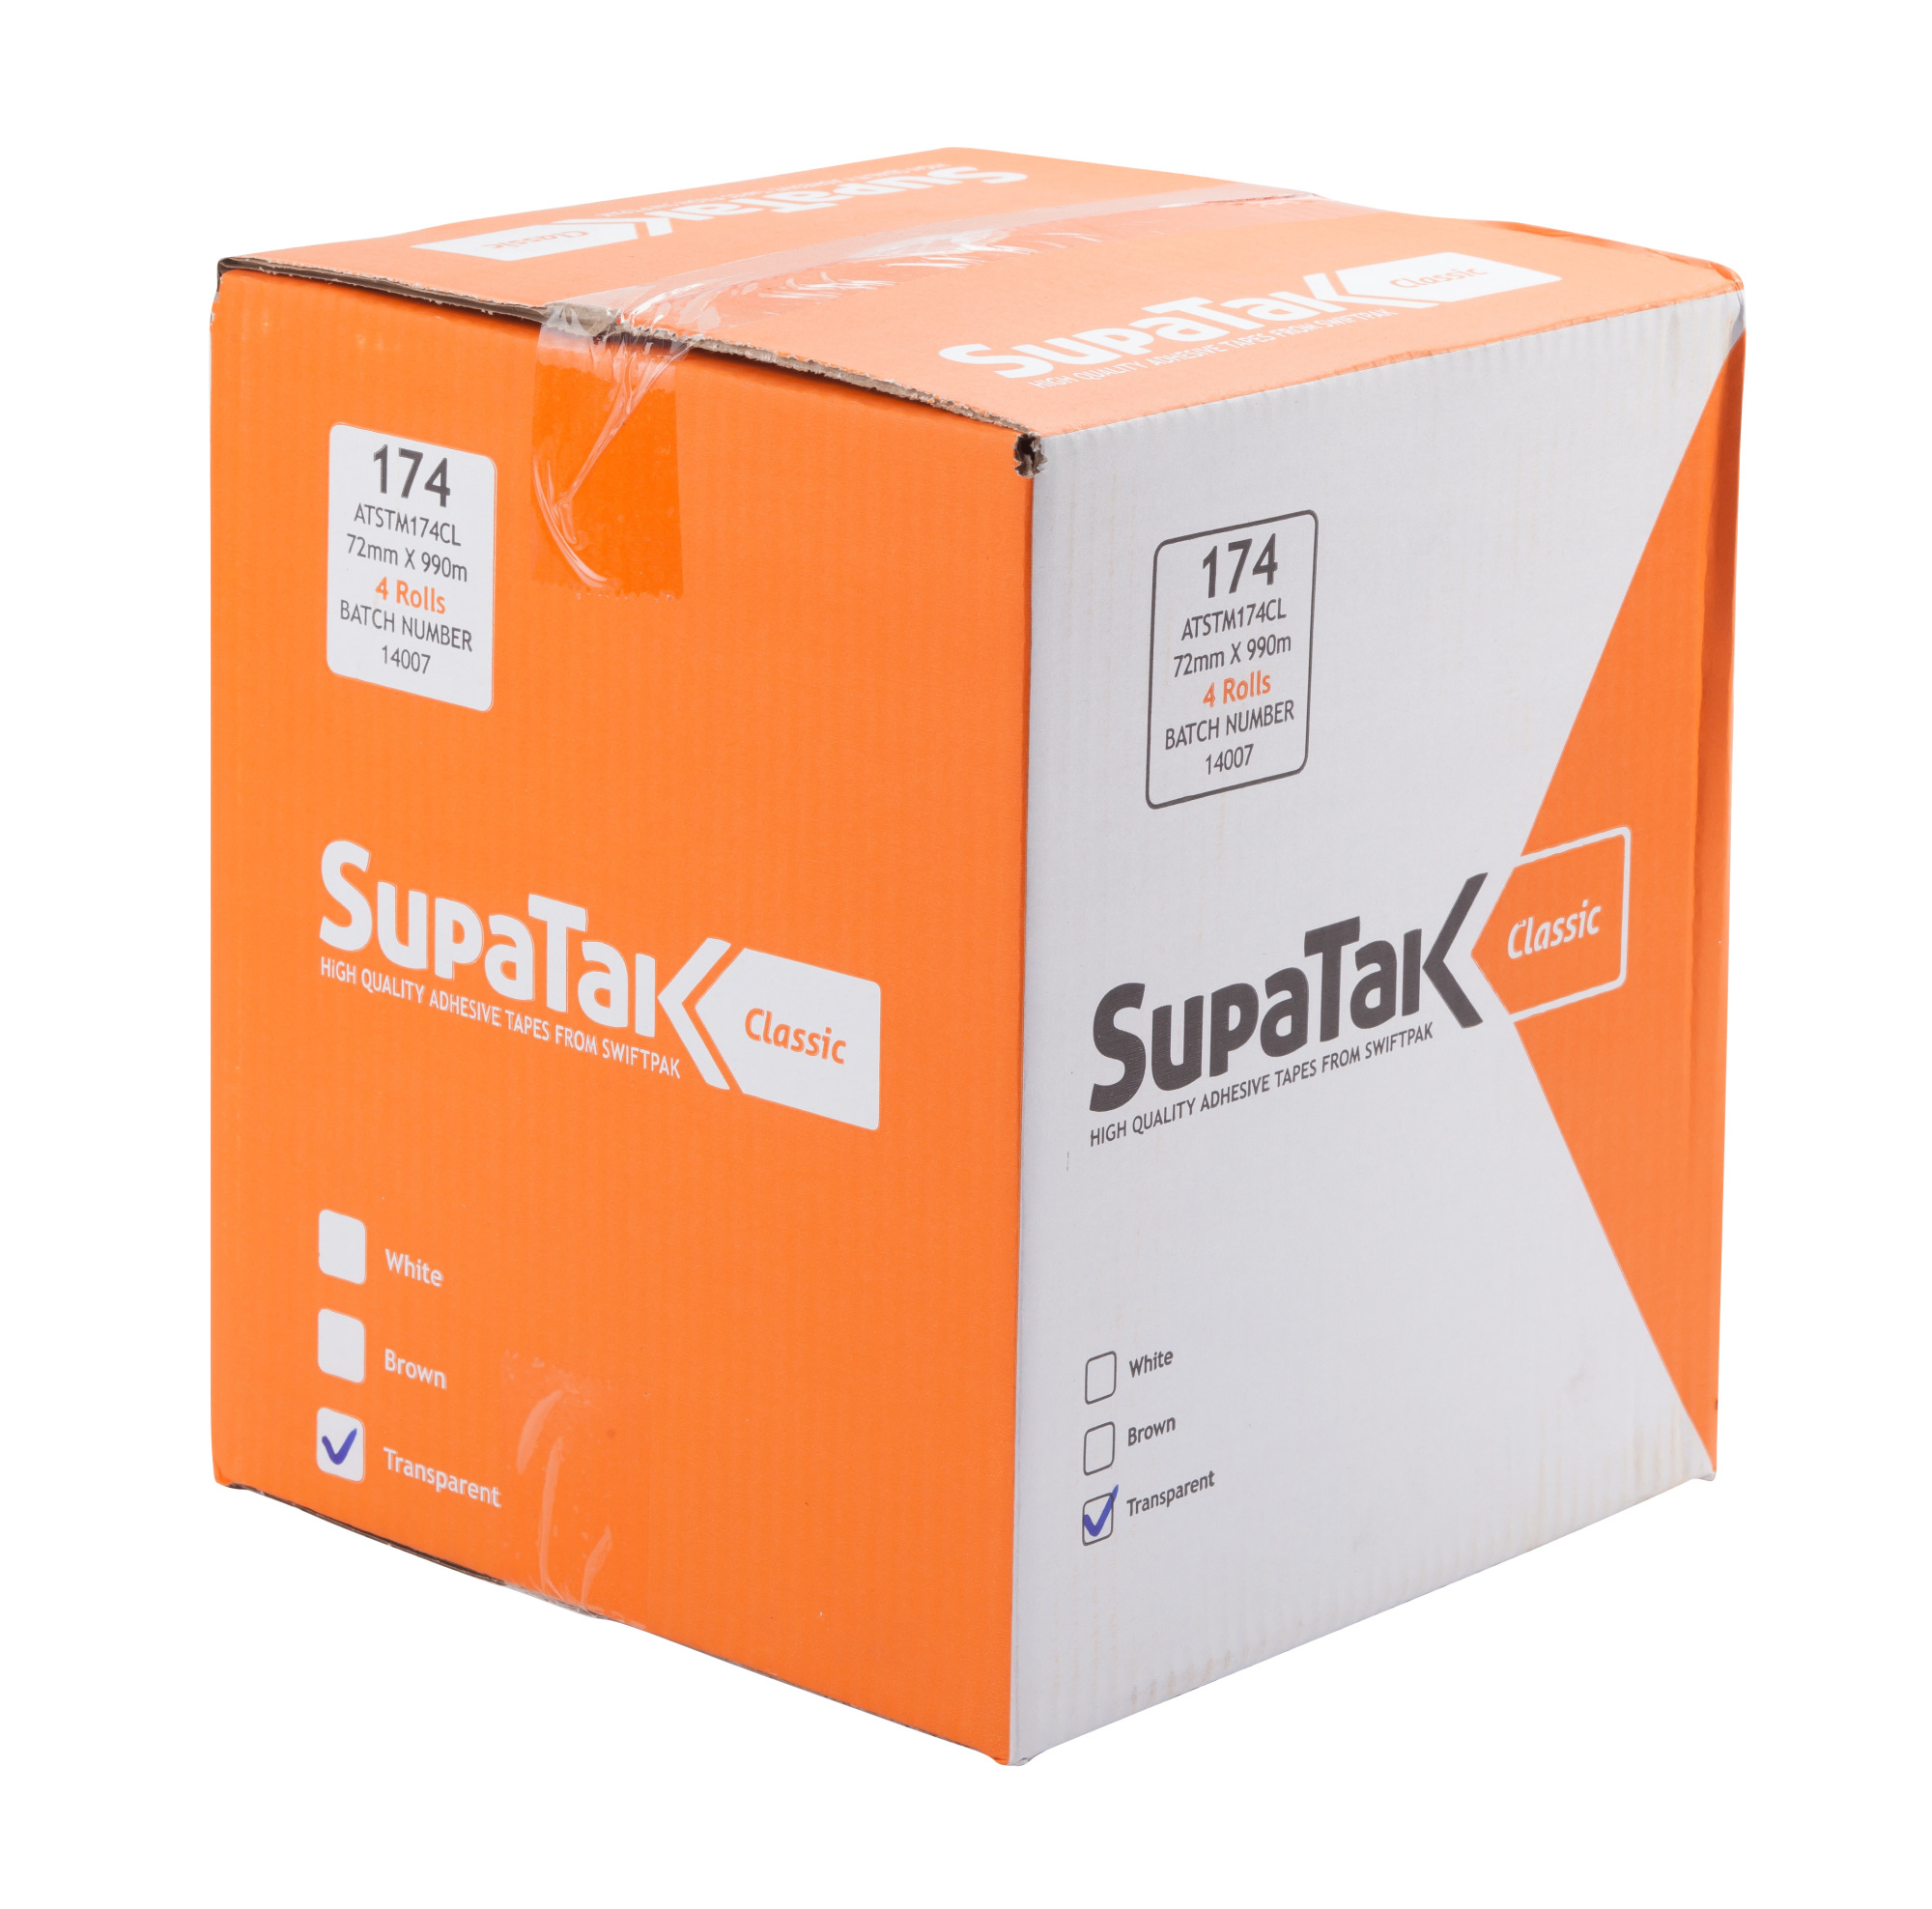 SUPATAK Classic 48mm x 990m Clear Tape